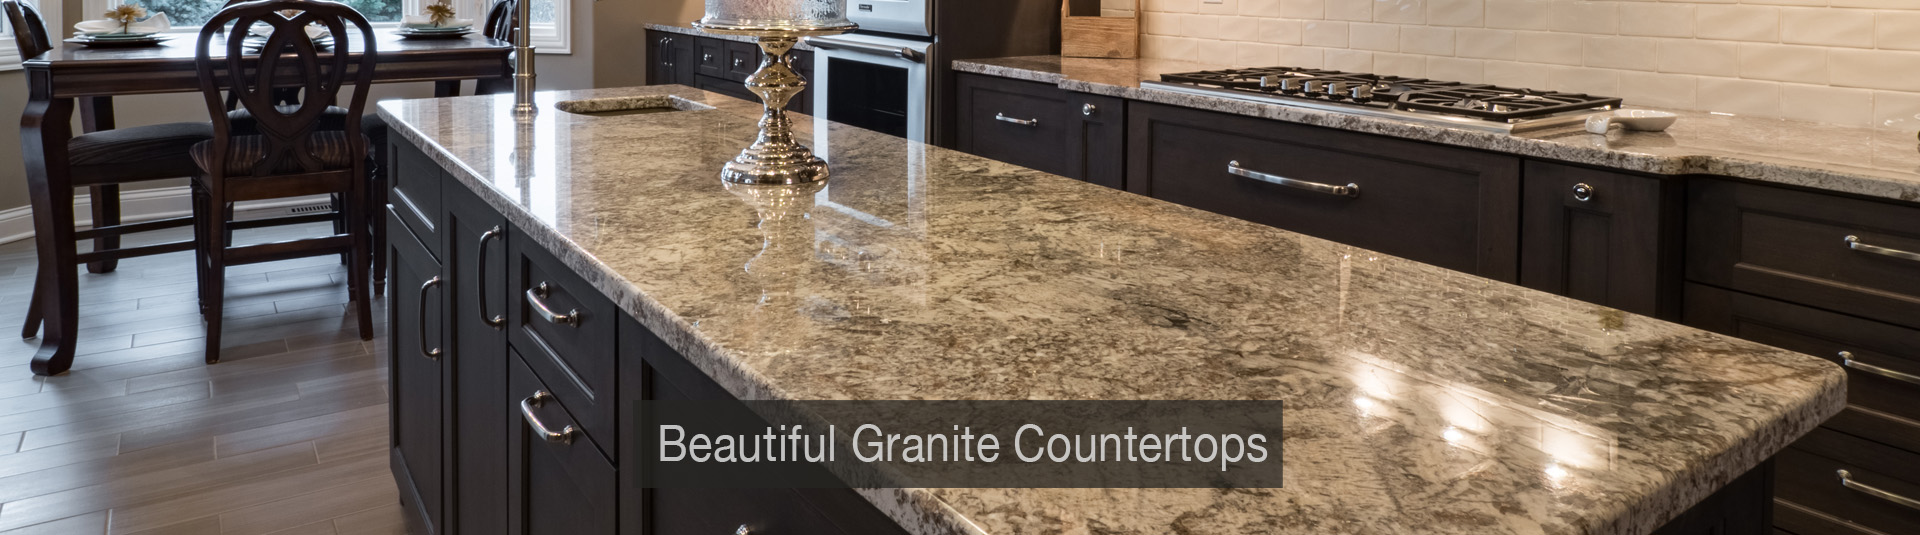 Granite Countertops In Rockford Il Benson Stone